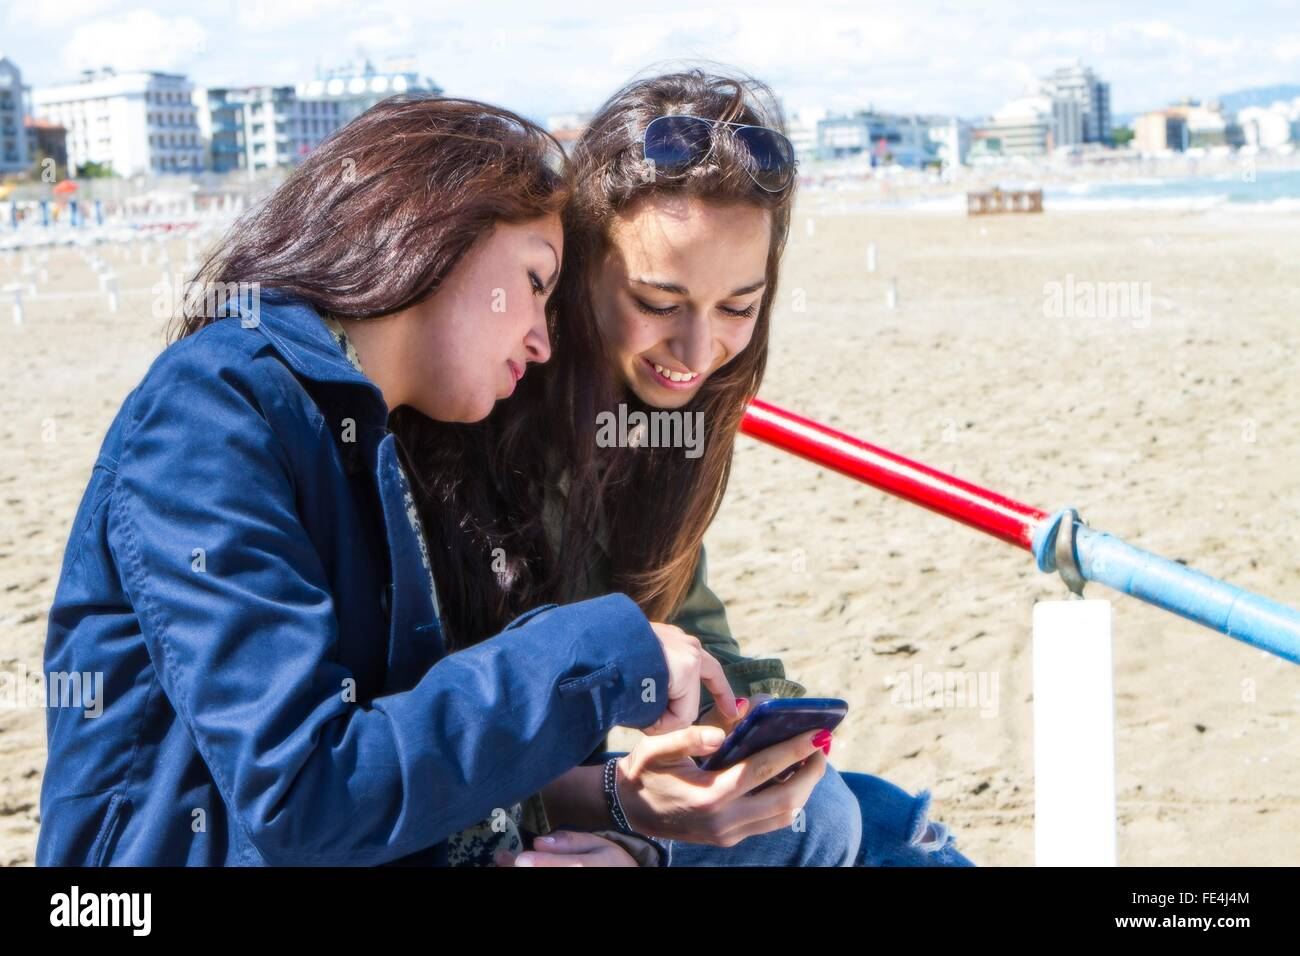 Female Friends Text Messaging On The Beach - Stock Image